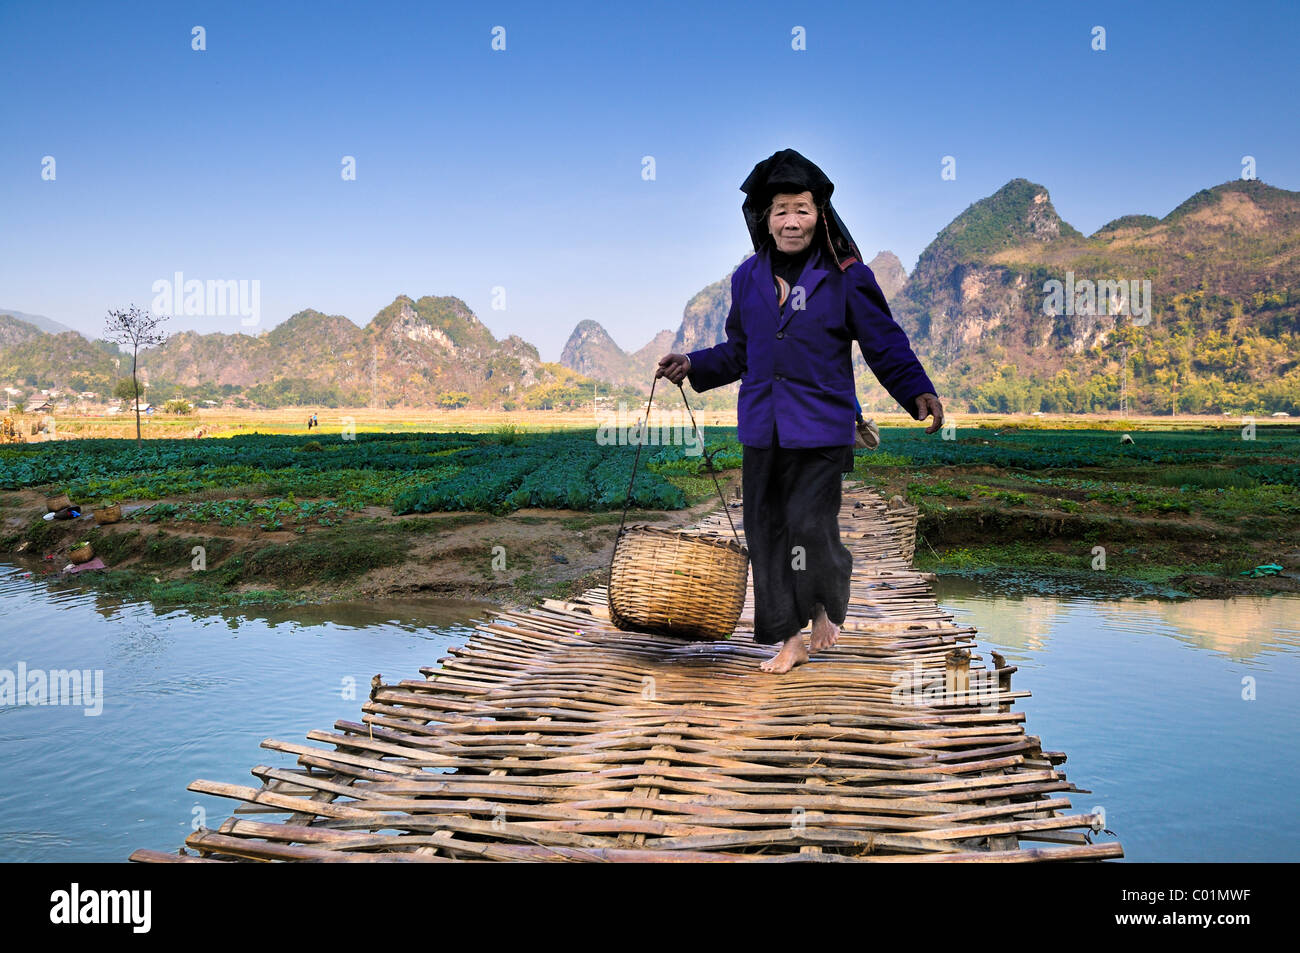 Woman carrying a basket crossing a woven bridge, dry Halong Bay, Vietnam, Asia - Stock Image